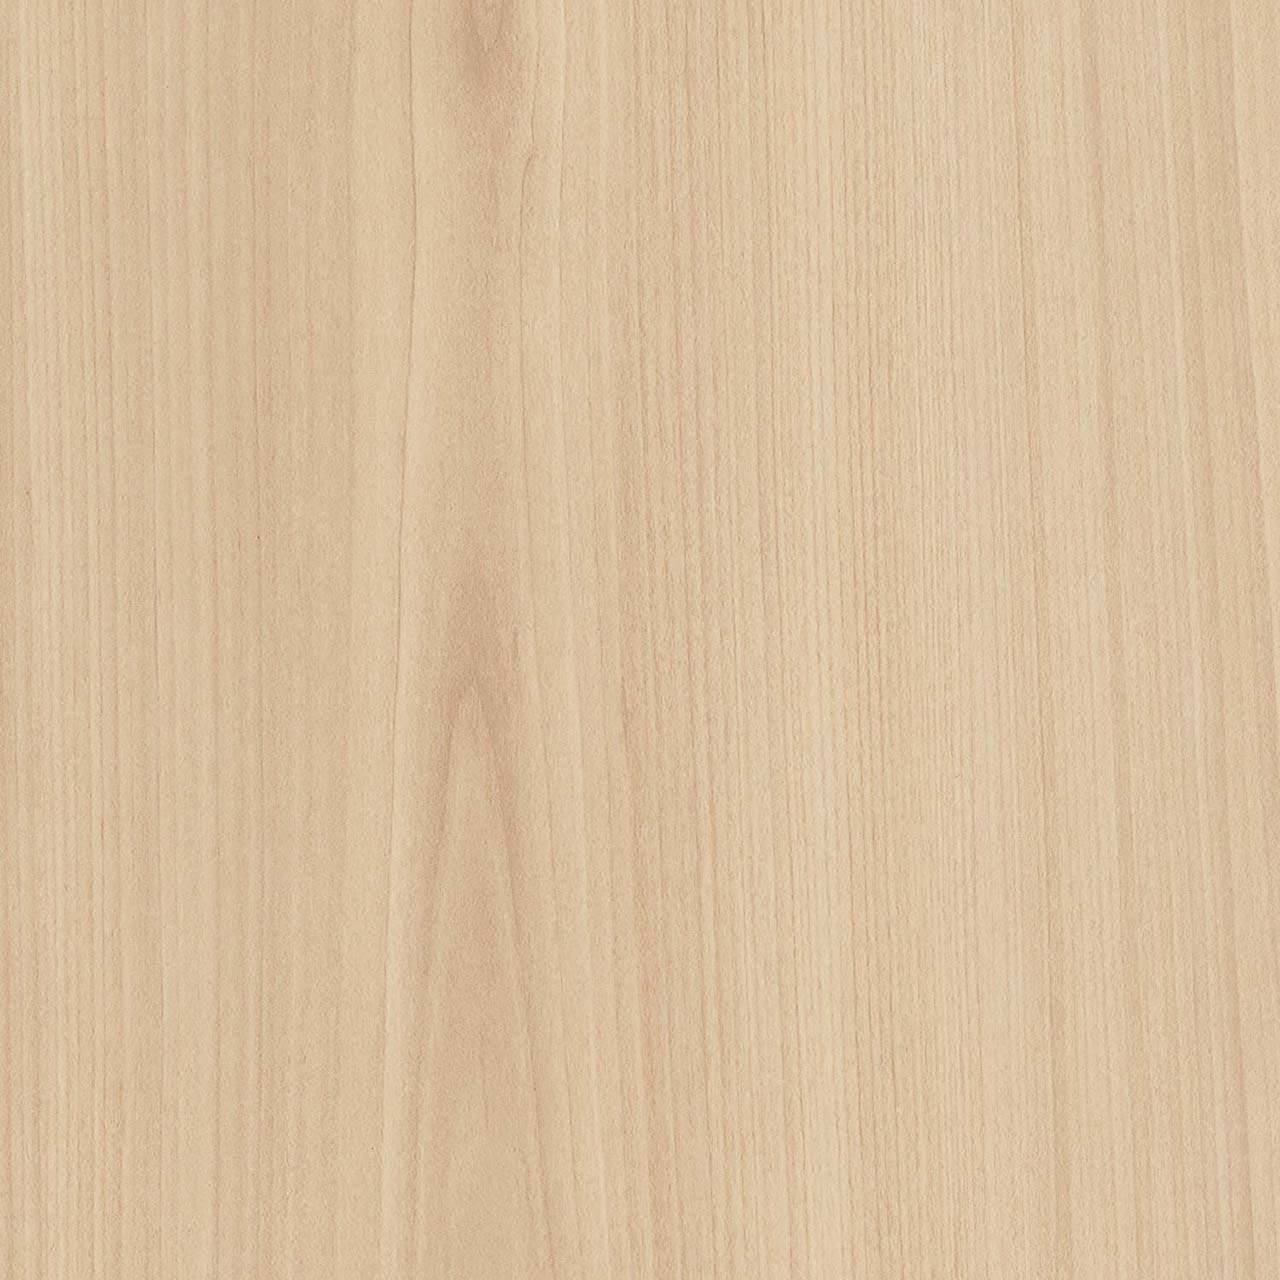 Swiss Pear effect laminate panel